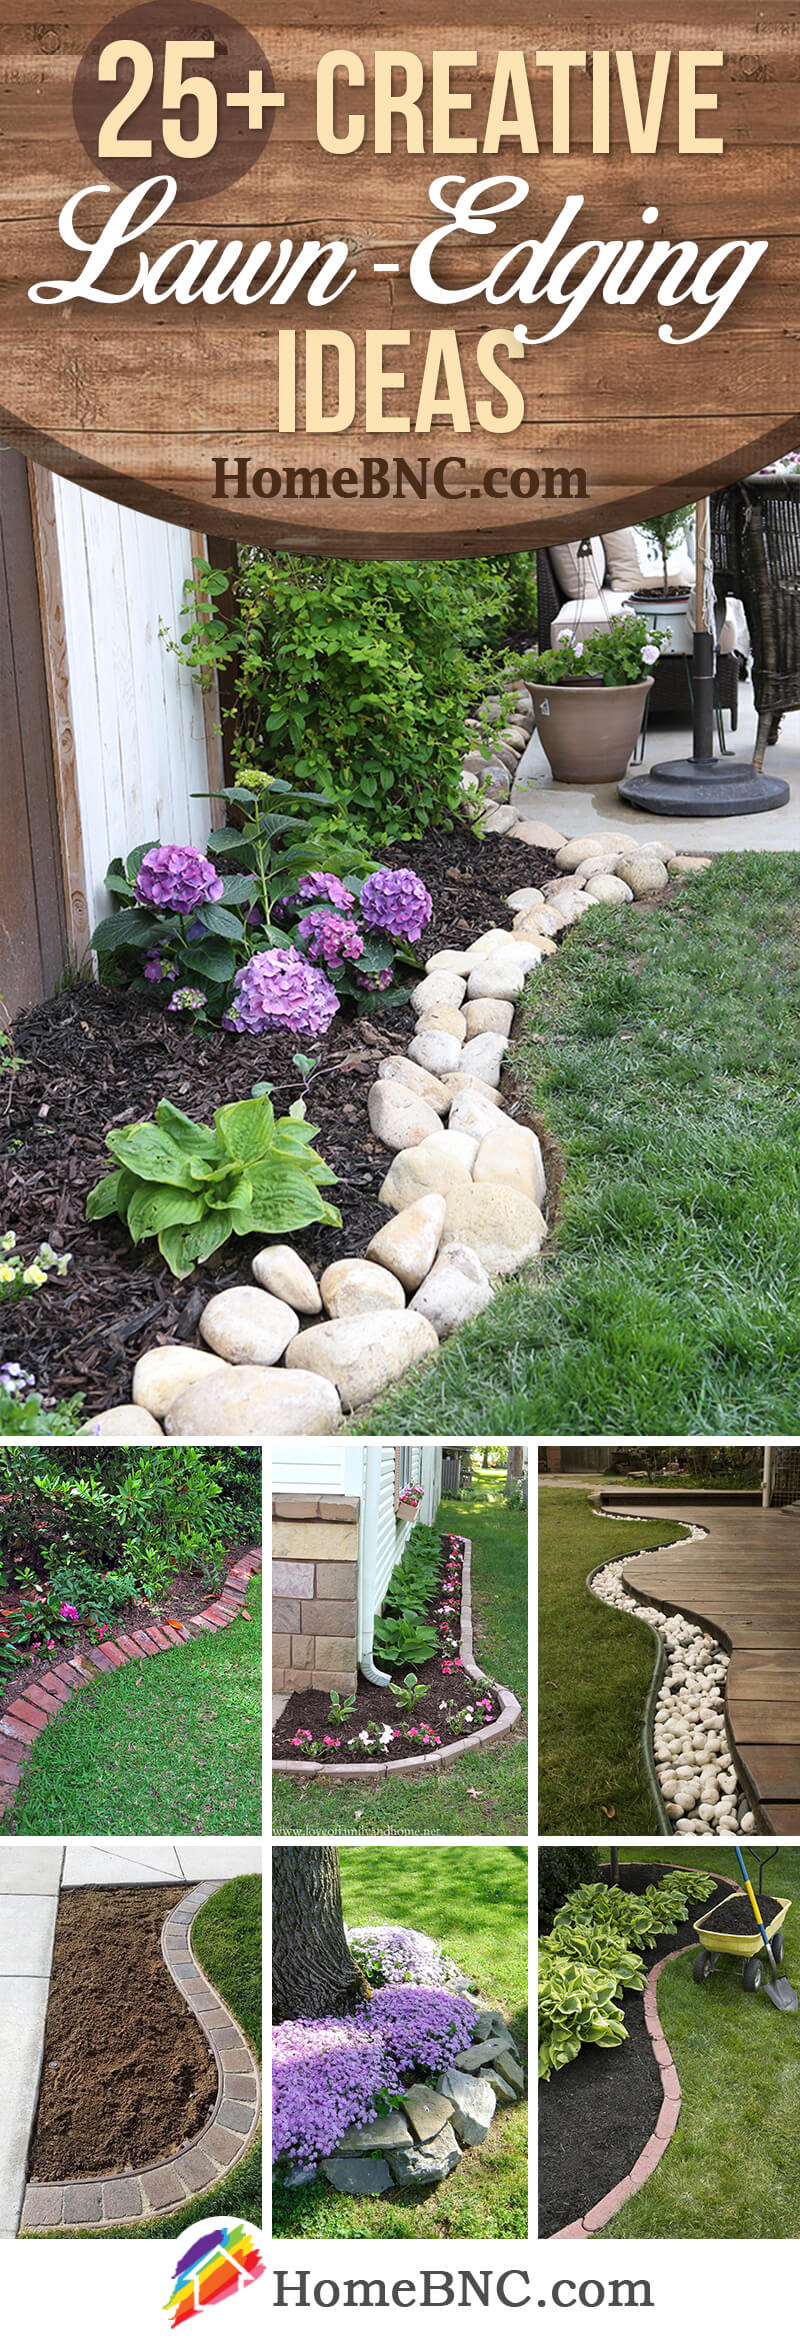 Lawn-Edging Ideas